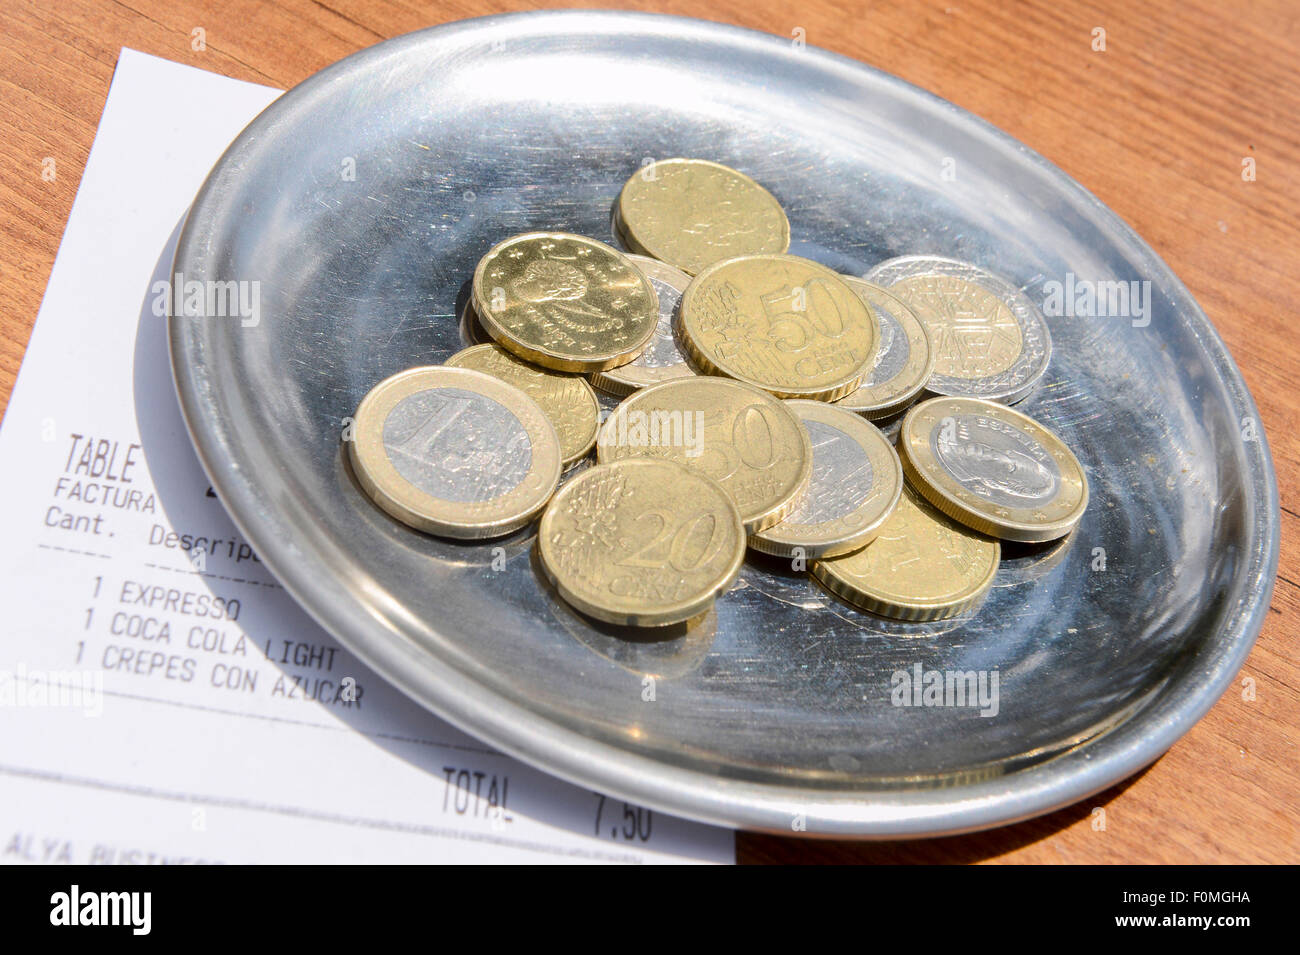 Drinks bill and Euro coins as payment on a silver tray after being given the bill in a cafe in Marbella Stock Photo